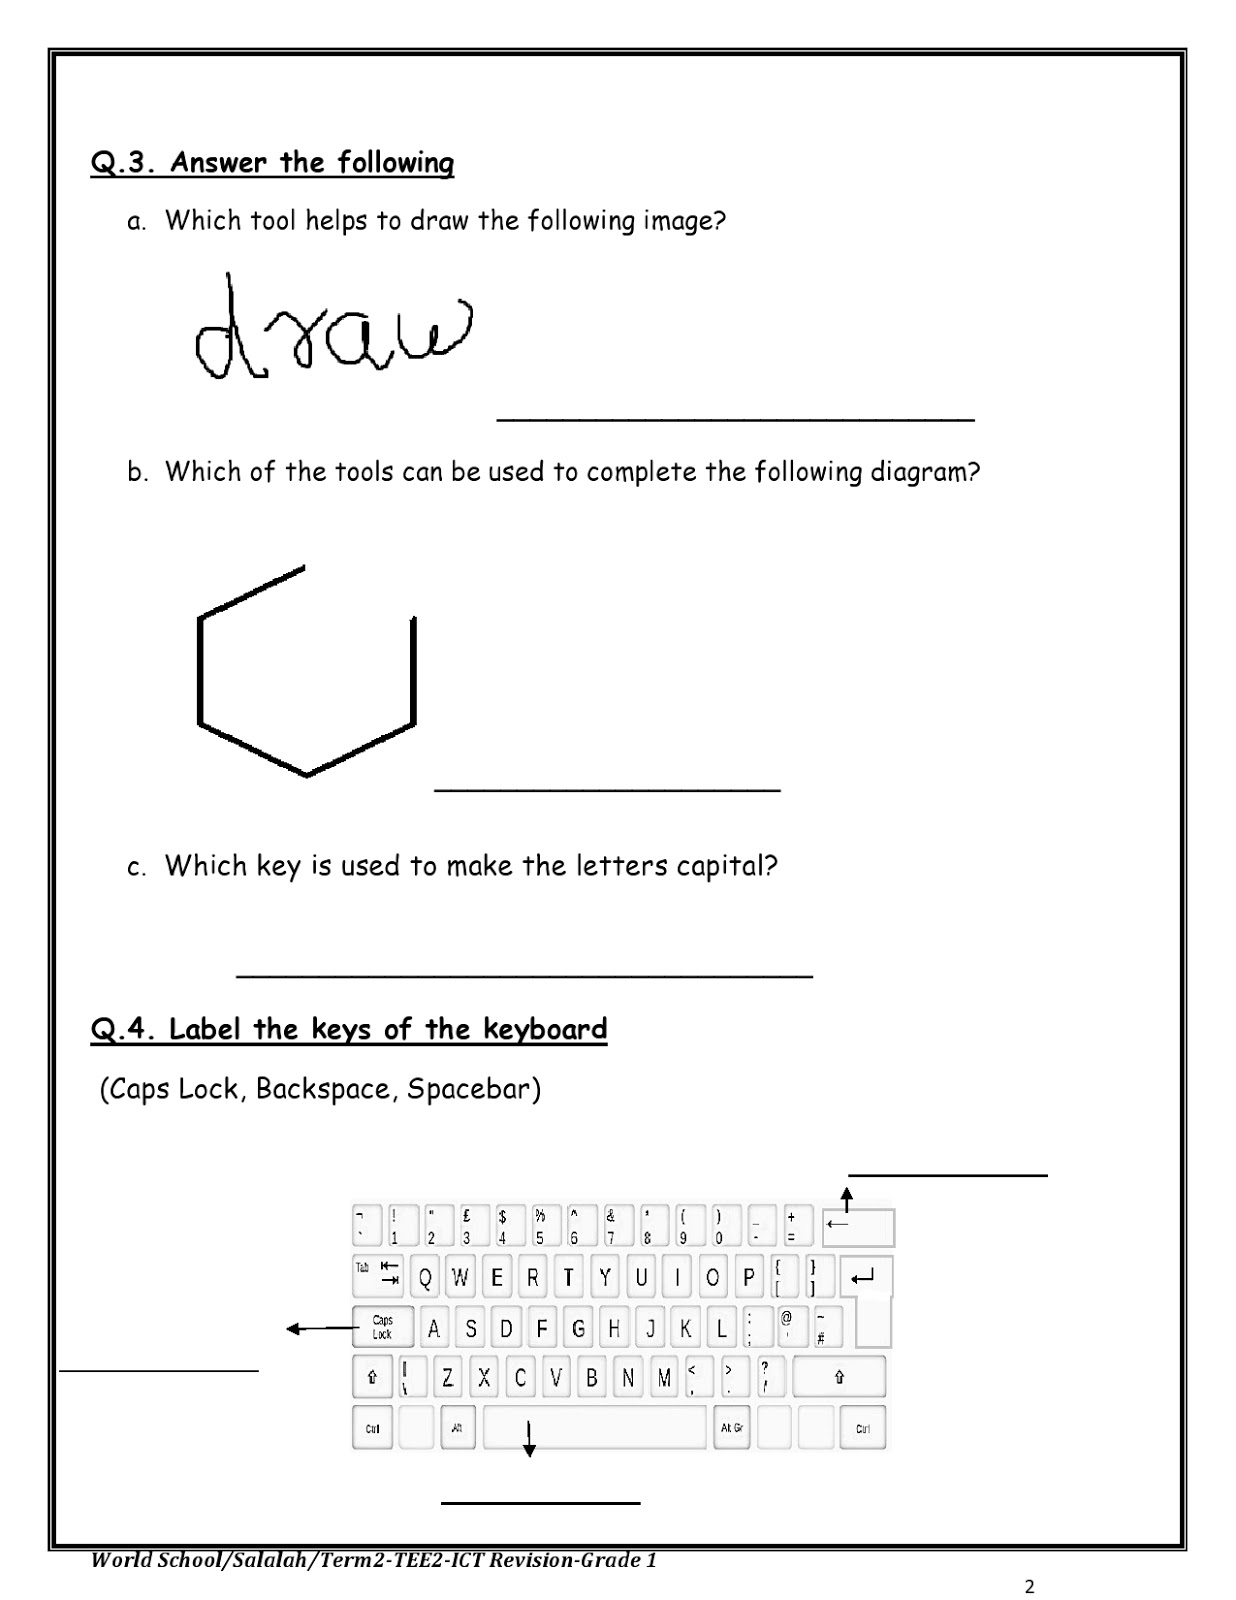 Birla World School Oman Ict Revision Worksheet For Grade 1